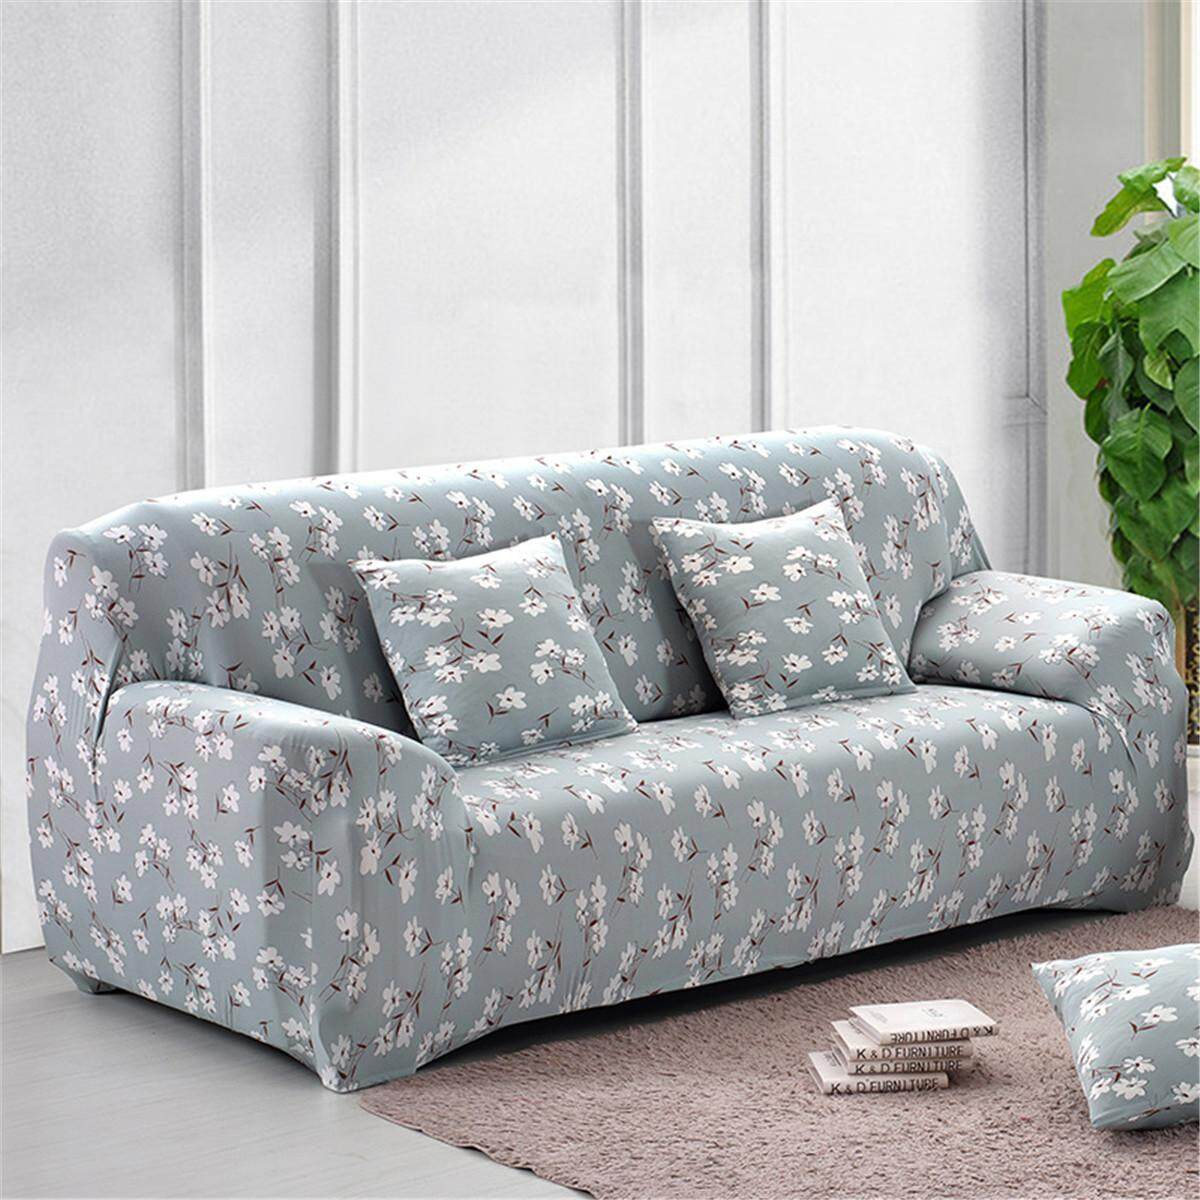 1/2/3Pcs Seater Floral Modern Stretch Sofa Slipcover Protector Soft Couch Cover #4 seater